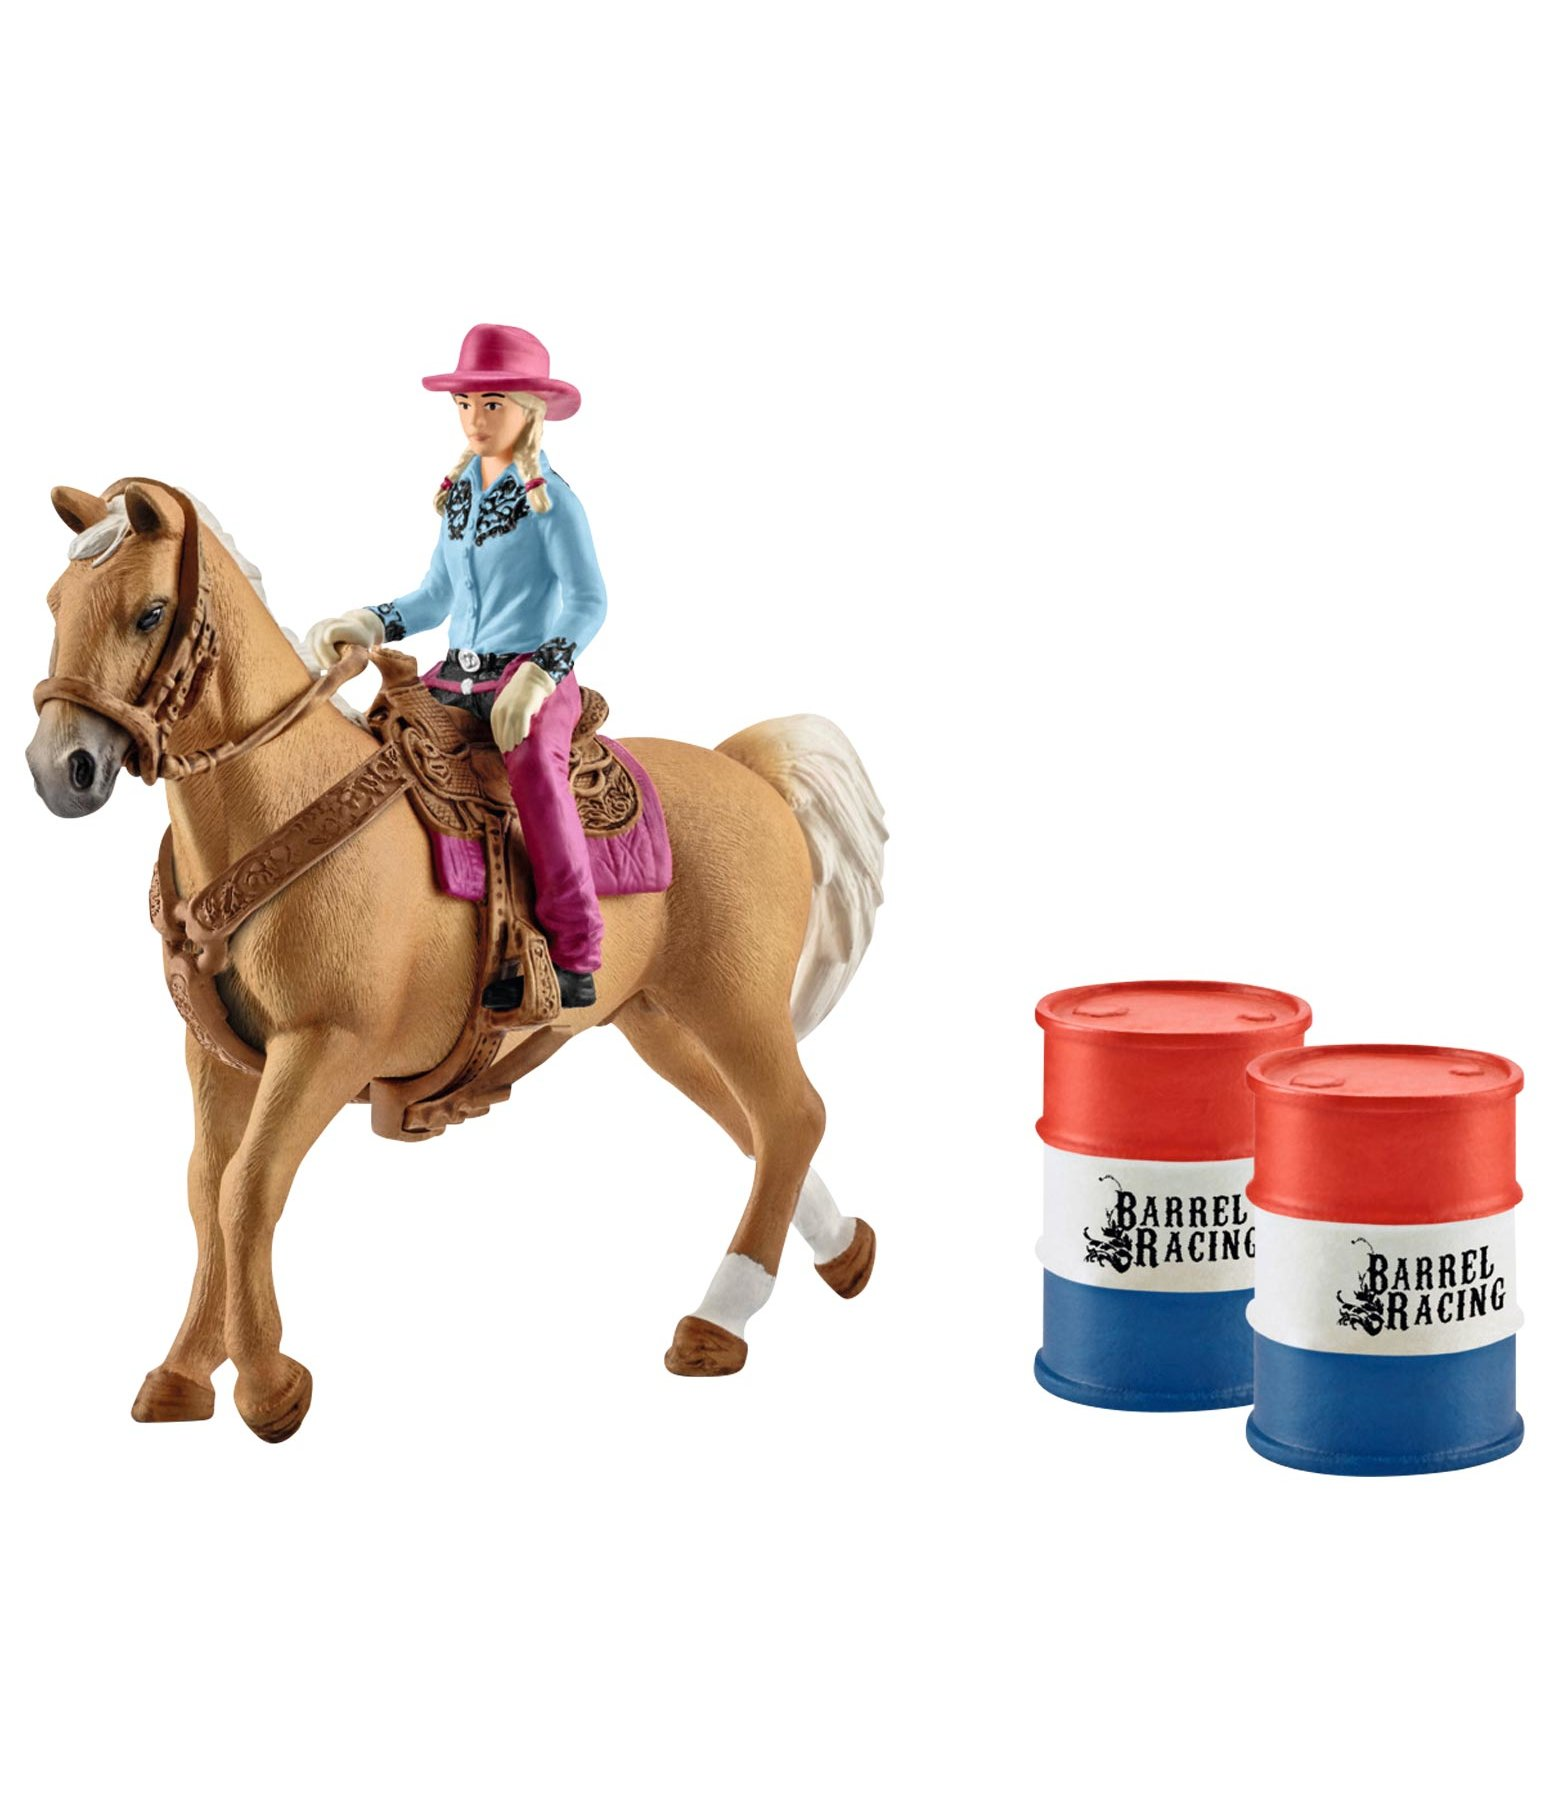 Set Barrel racing avec cowgirl